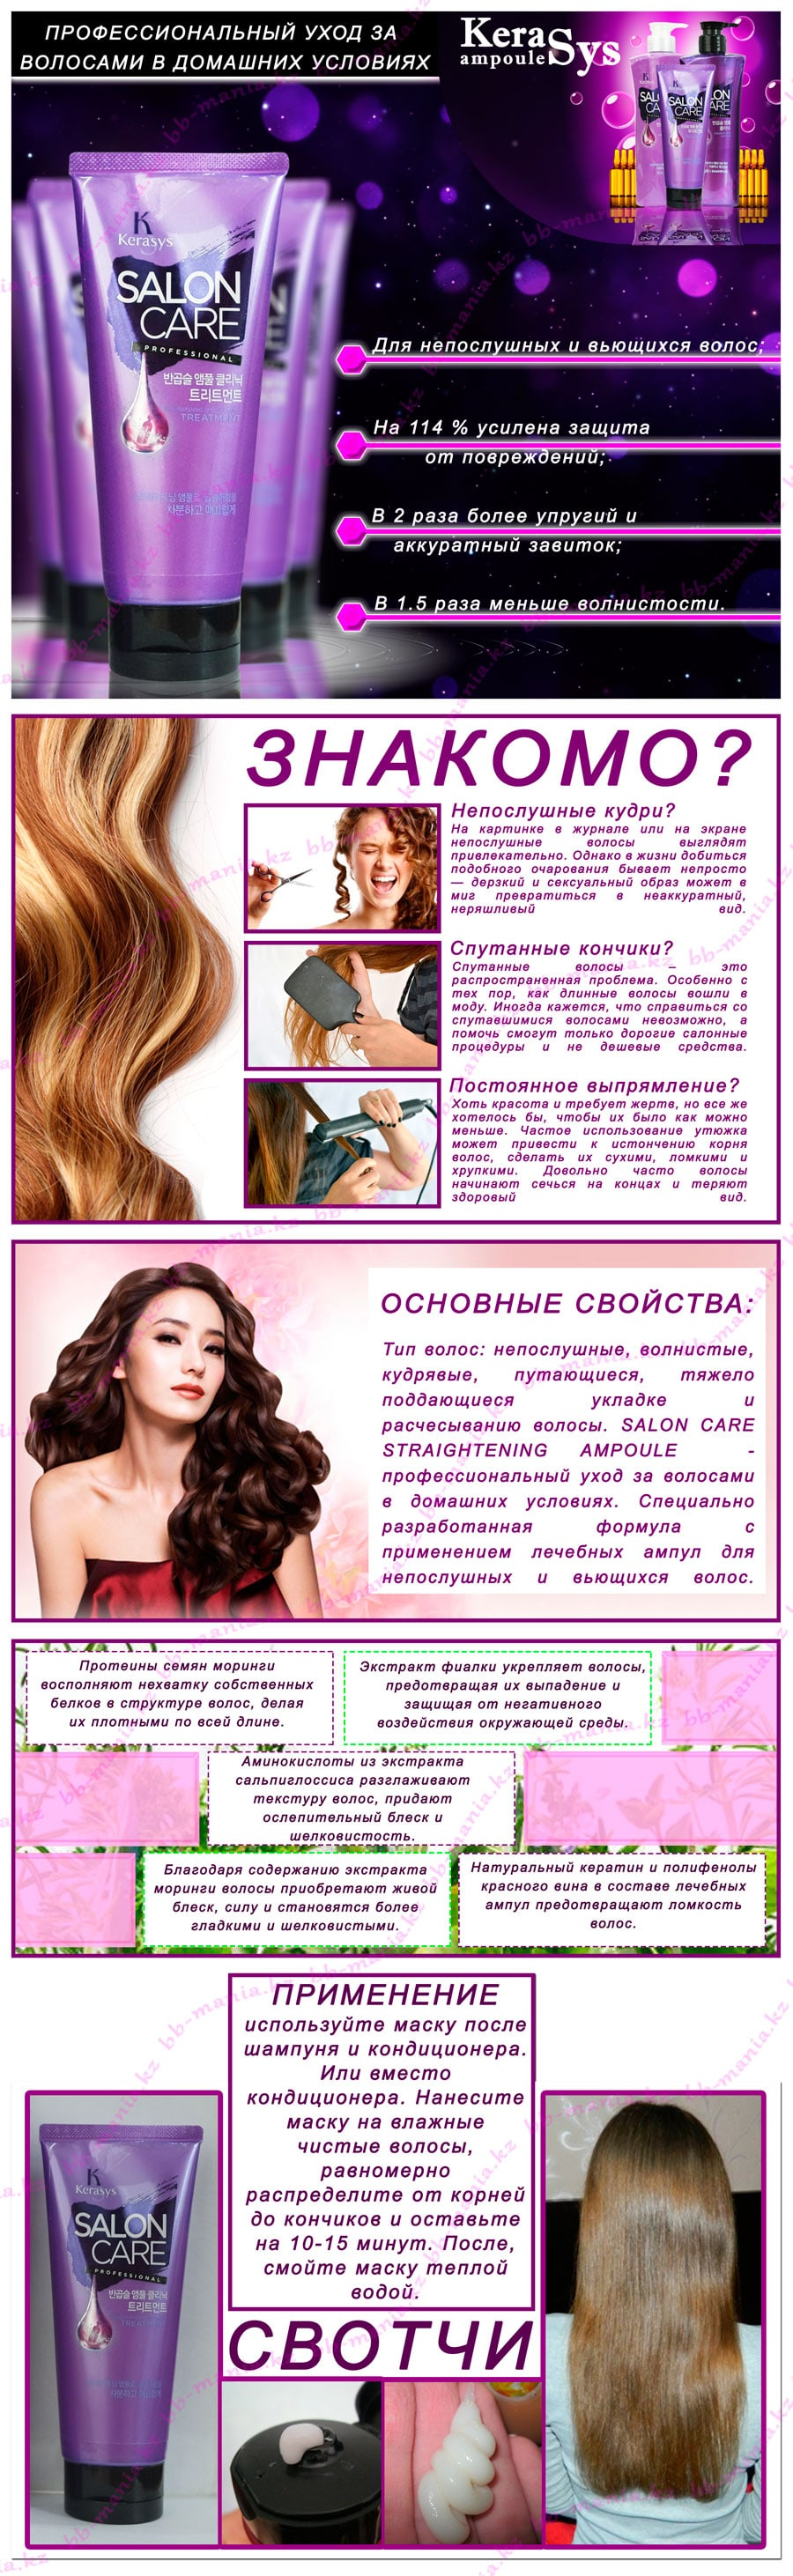 Salon-Care-Professional-Straightening-Ampoule-Clinic-Treatment-[Kerasys]-min